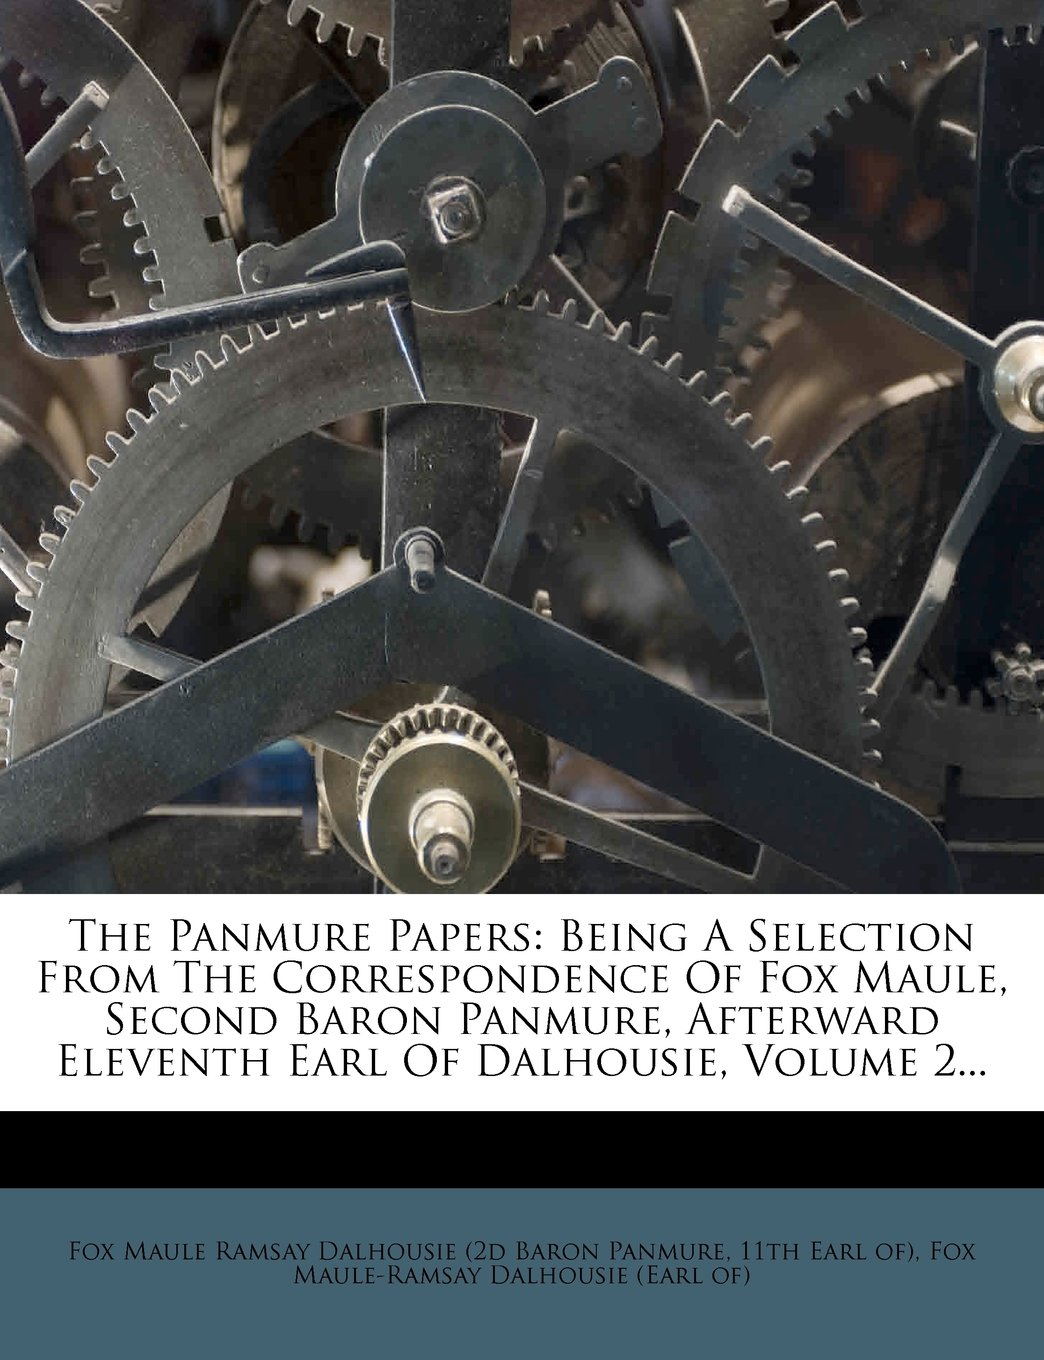 Read Online The Panmure Papers: Being A Selection From The Correspondence Of Fox Maule, Second Baron Panmure, Afterward Eleventh Earl Of Dalhousie, Volume 2... ebook